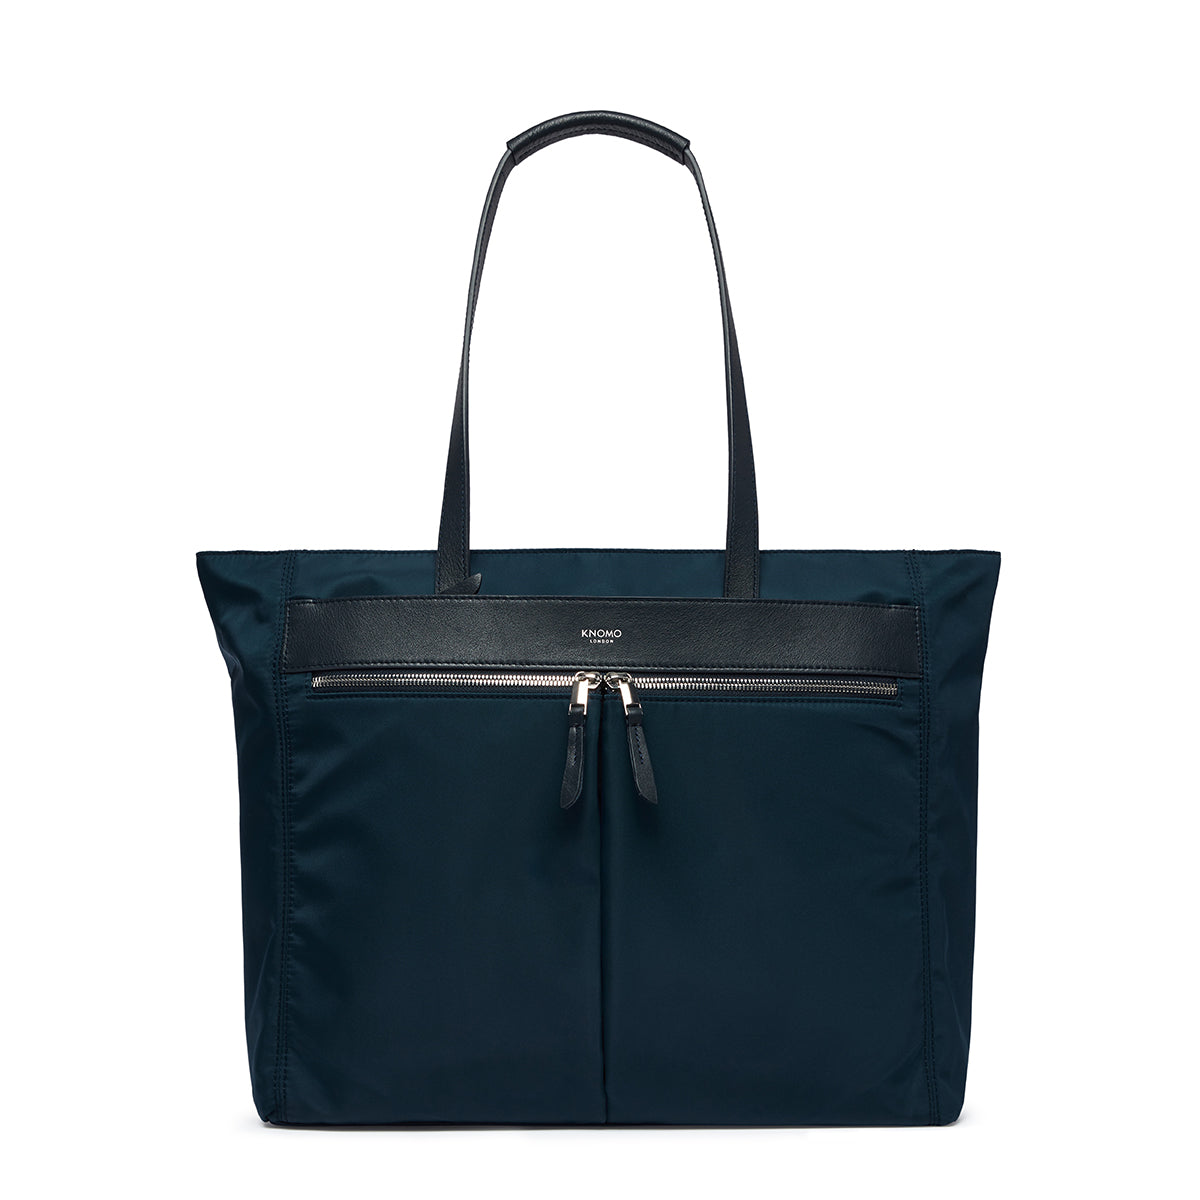 "Grosvenor Place Laptop Tote Bag - 15"" -  Dark Navy Blazer 